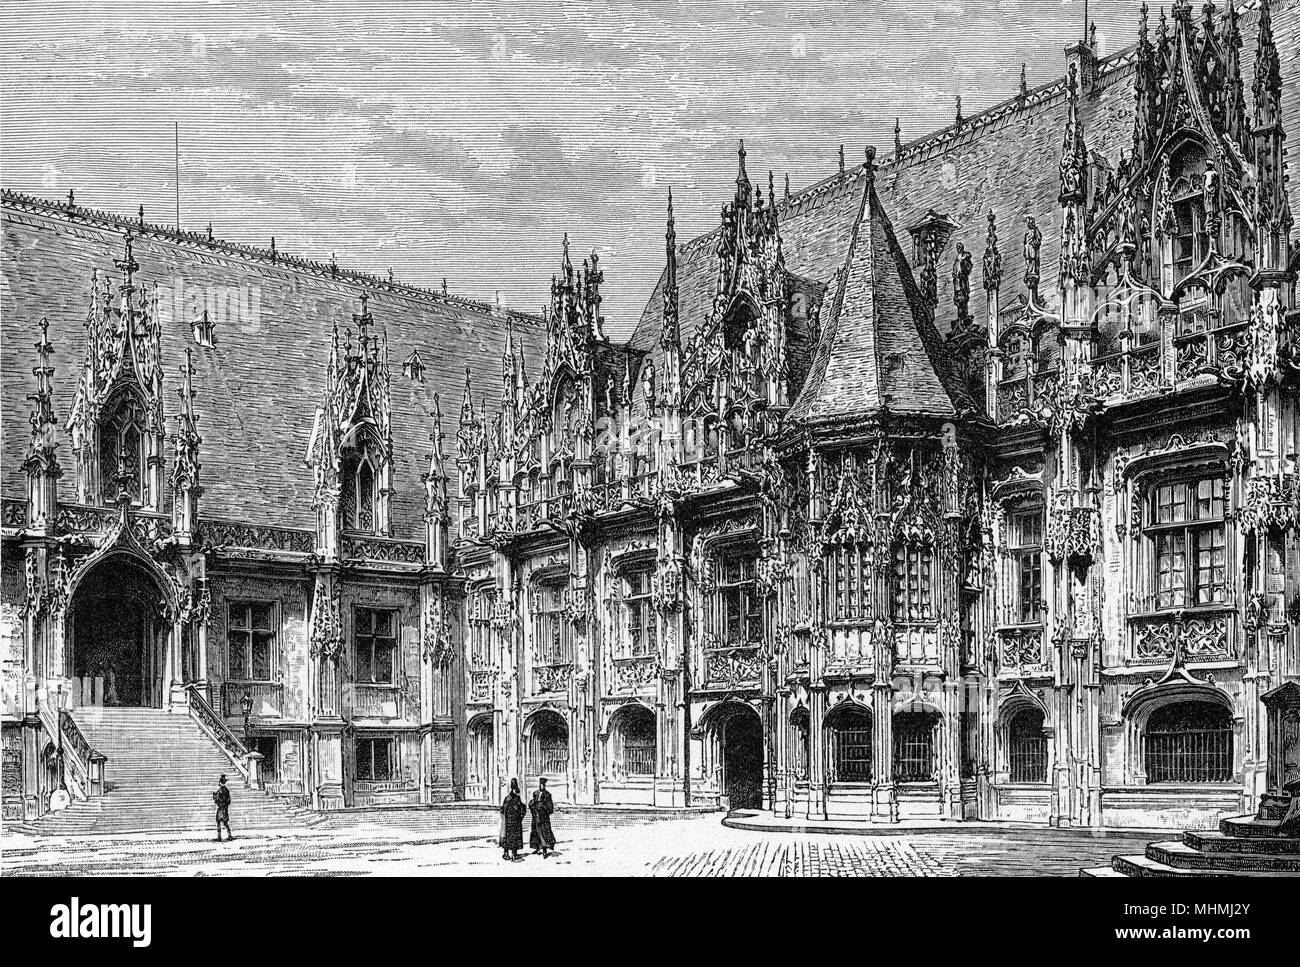 Rouen's Palace of Justice.        Date: circa 1875 - Stock Image